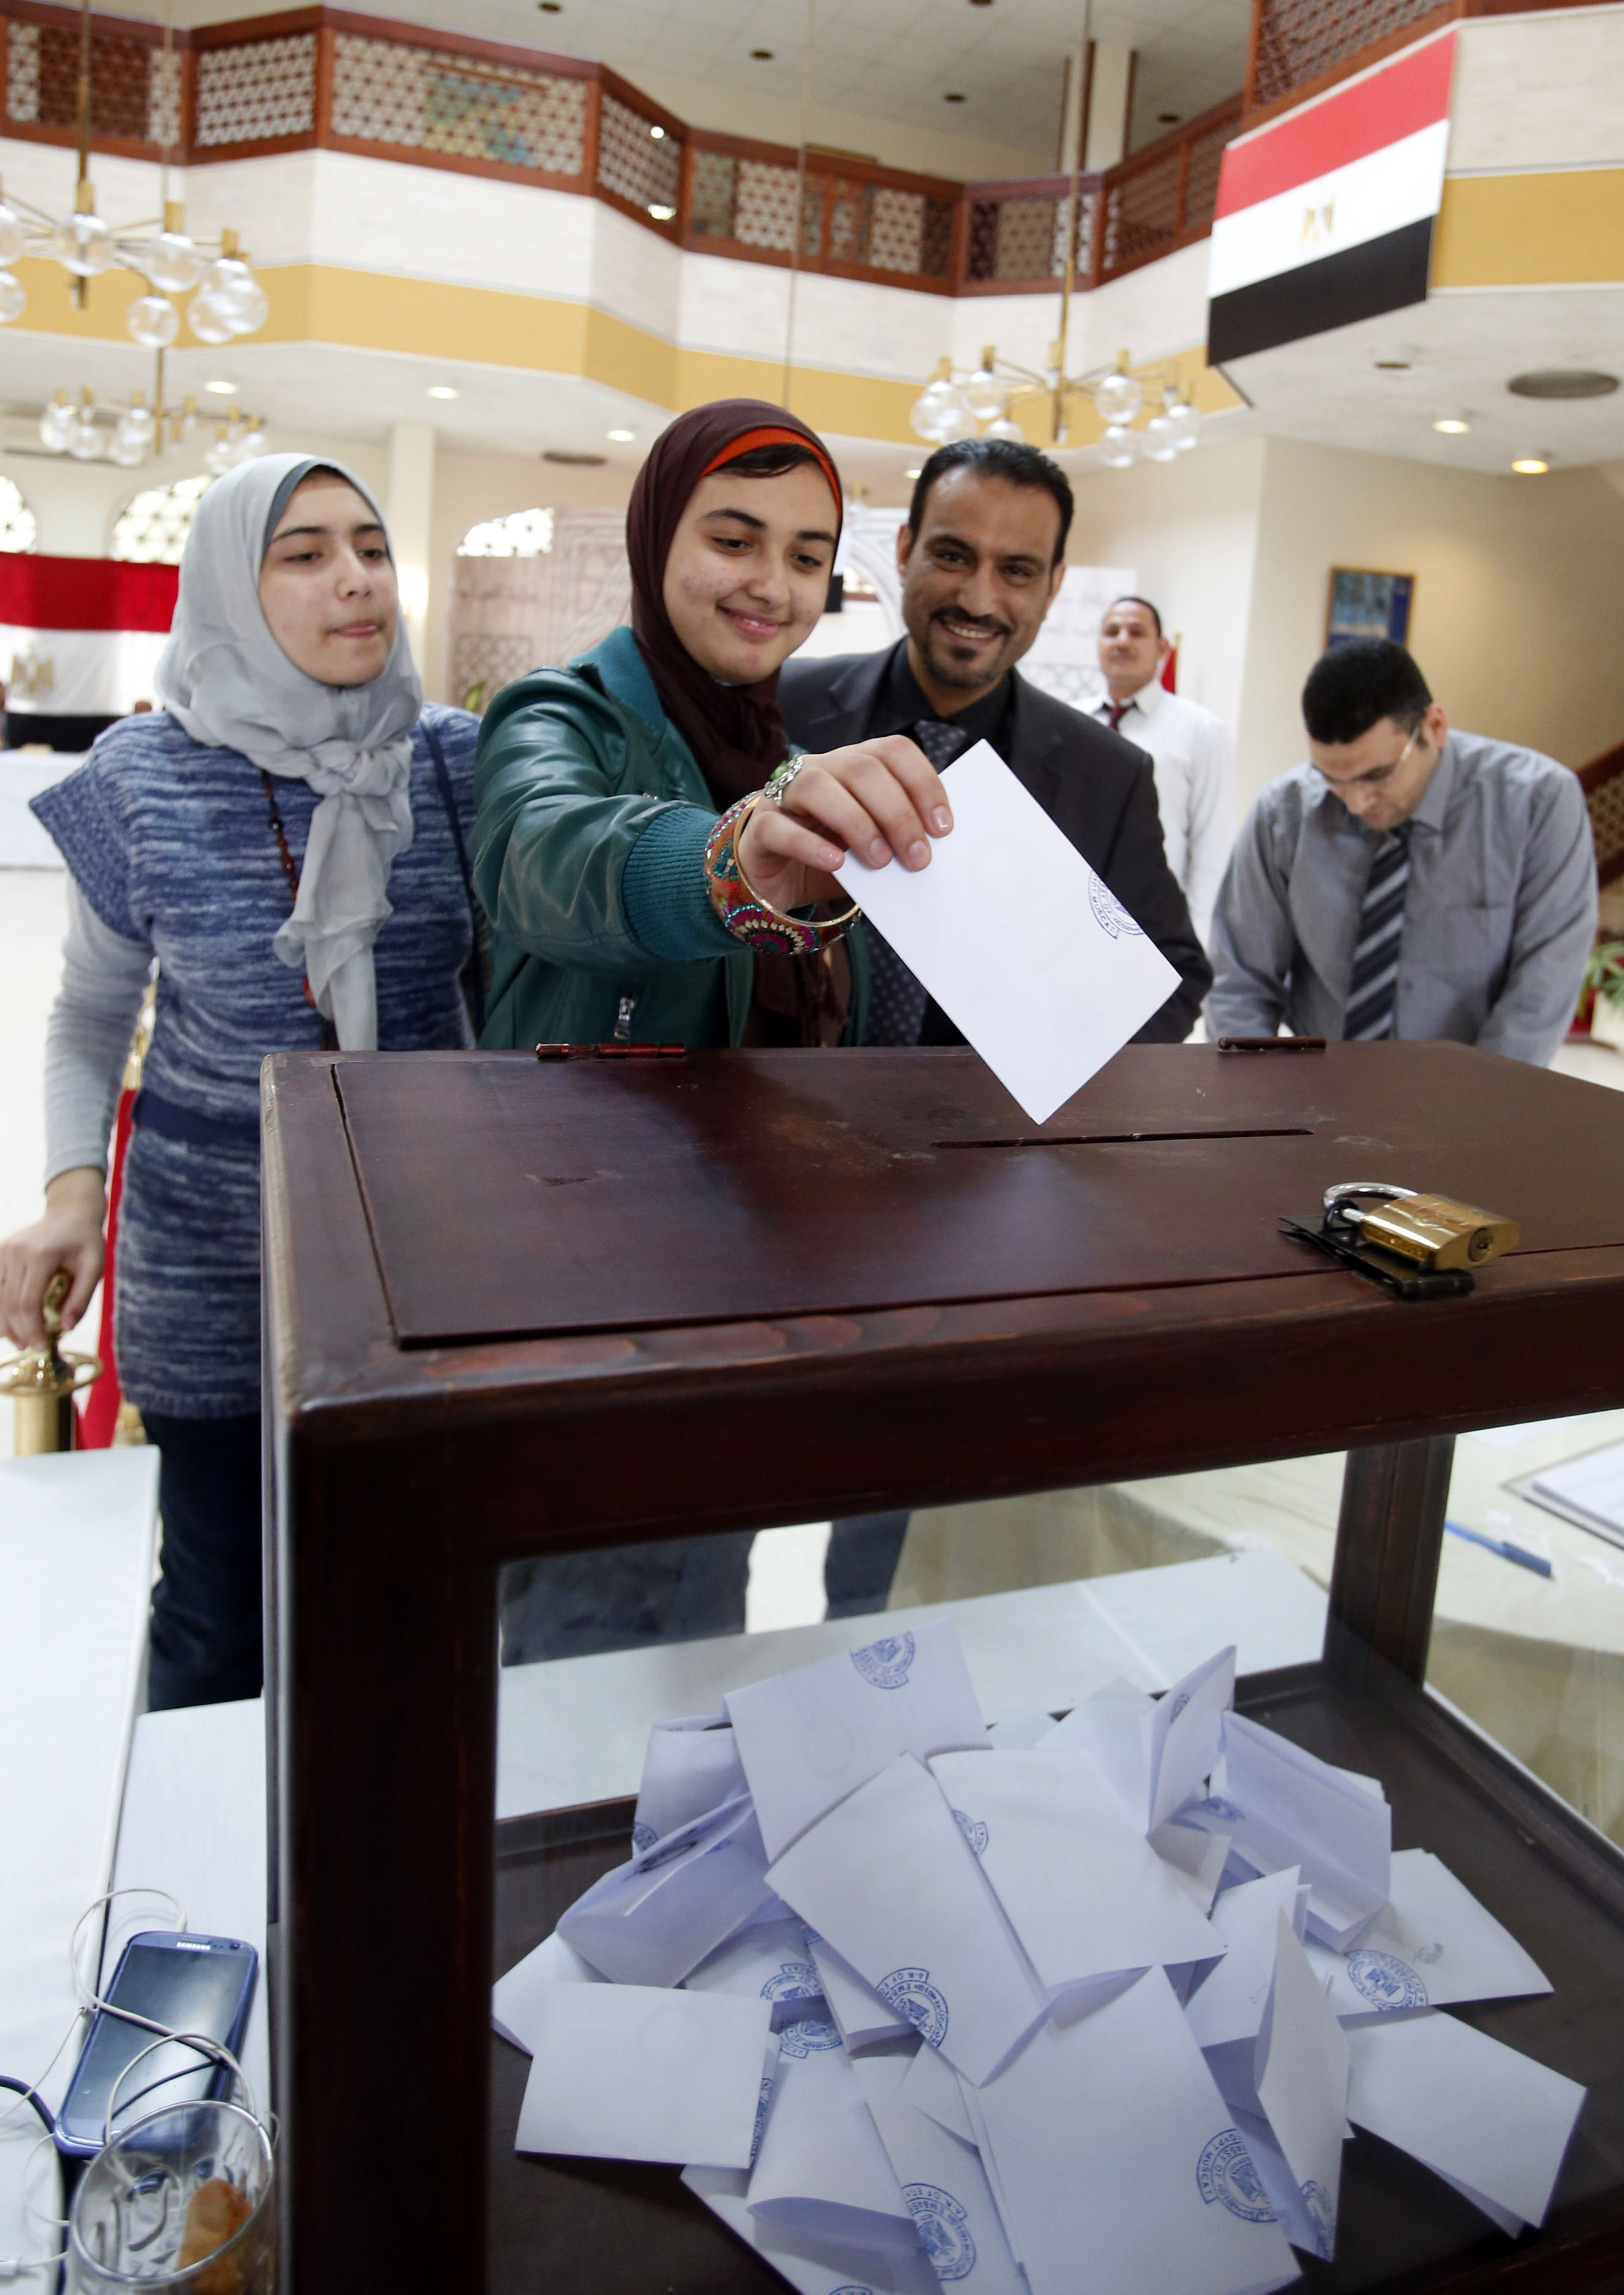 An Egyptian woman living in Oman casts her vote on a divisive draft constitution in Egypt at the Egyptian embassy in the Gulf sultanate's capital Muscat on January 8, 2014. Islamist supporters of deposed president Mohamed Morsi have called for a boycott of the January 14-15 vote on a new constitution drawn up by the interim authorities since his July overthrow by the army.  (AFP PHOTO/MOHAMMED  MAHJOUB)